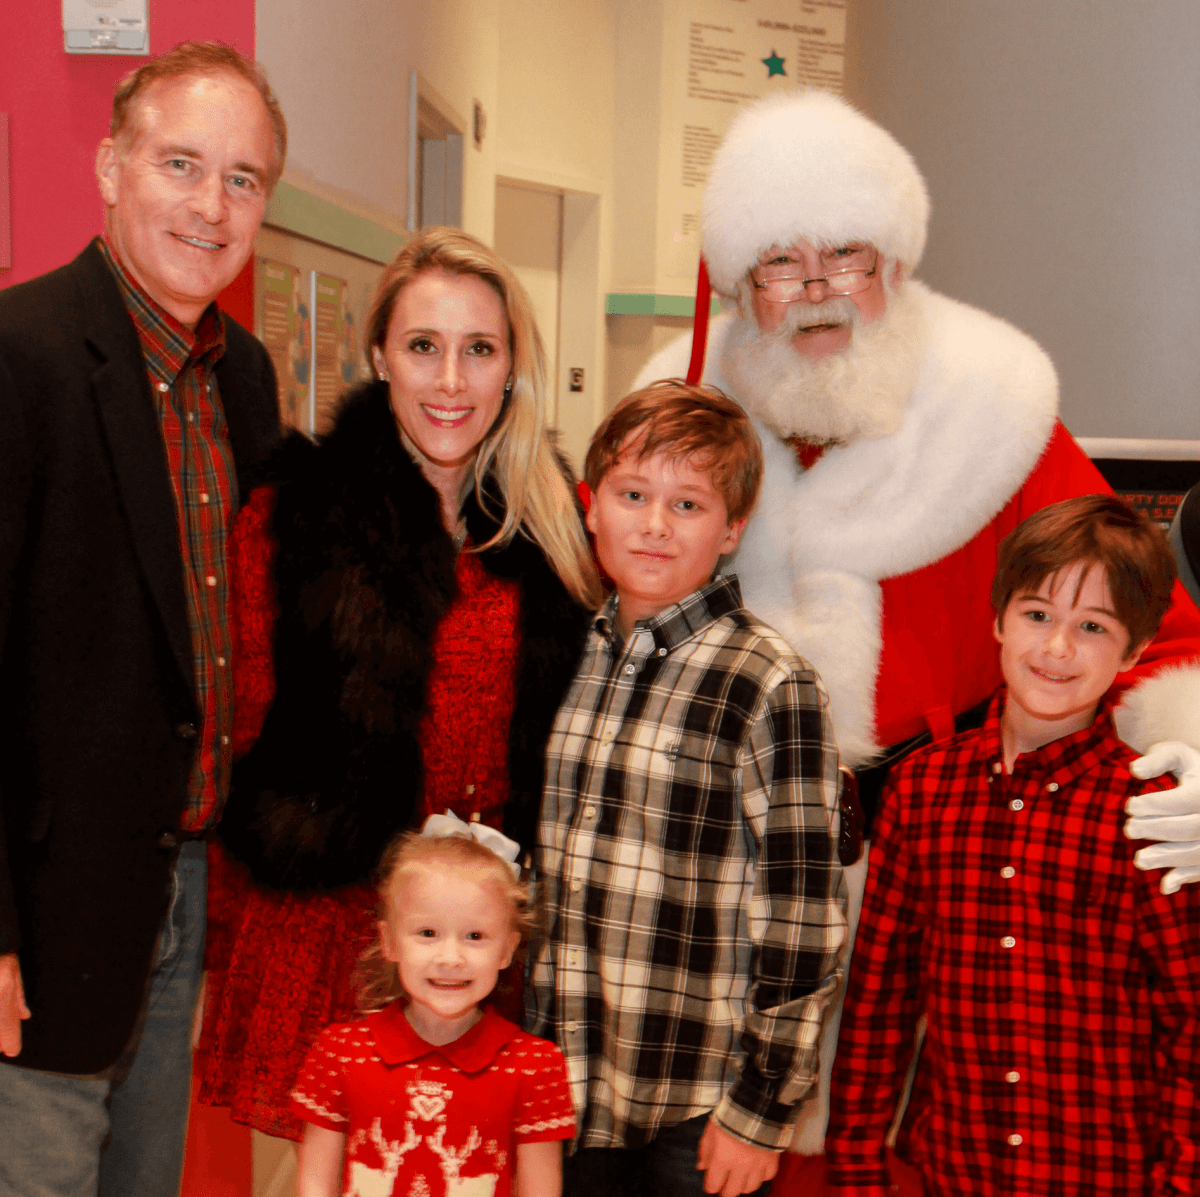 Children's Museum holiday party, Santa, Mark Sullivan, Christie Sullivan, children